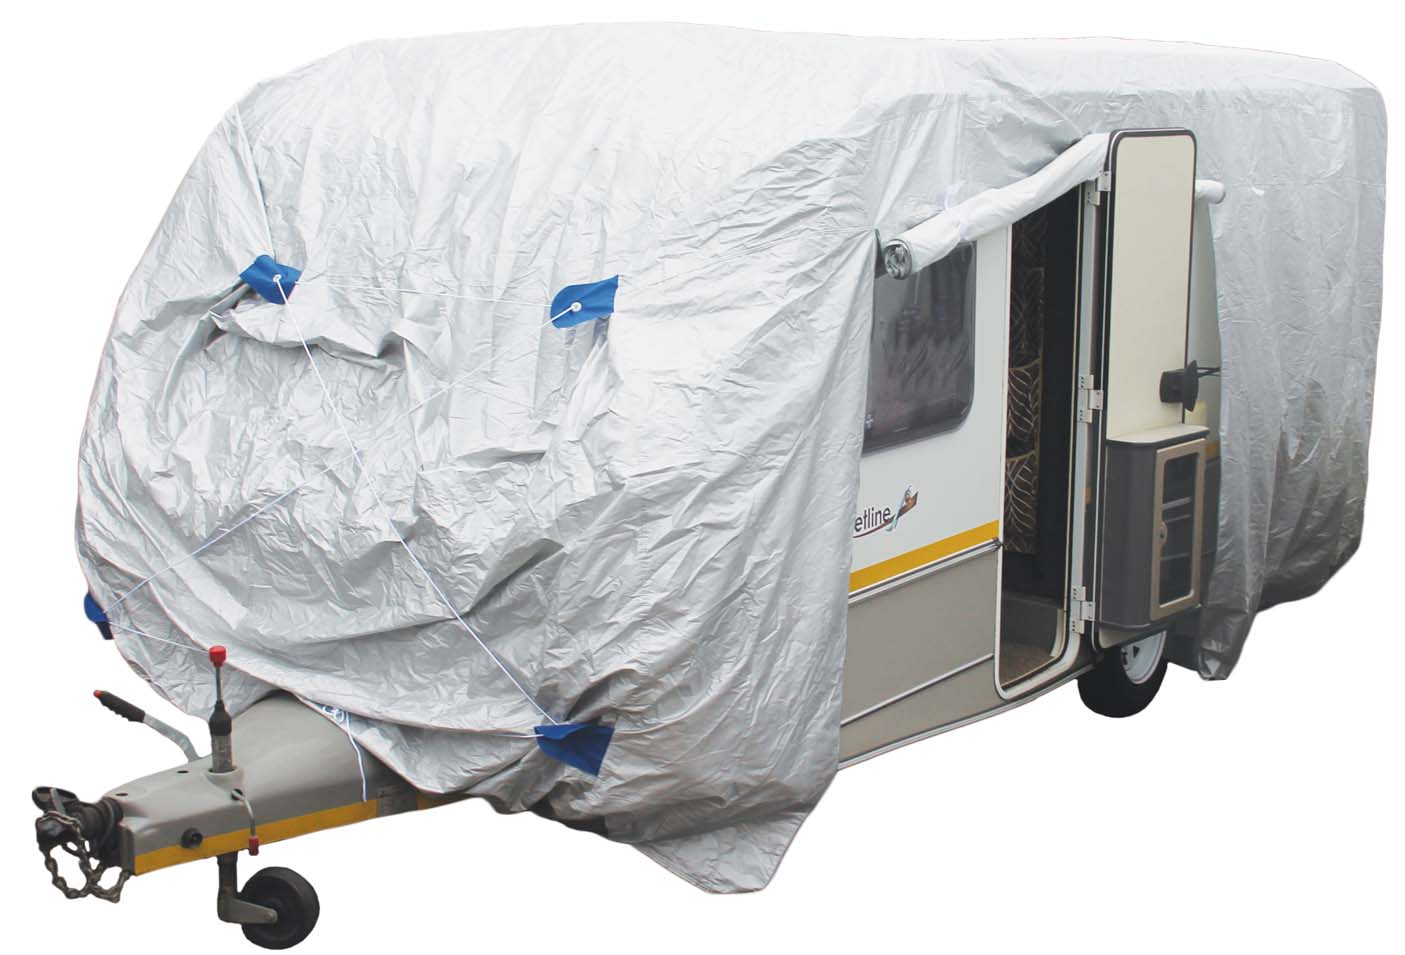 polyurethane-waterproof-caravan-covers--courier-r120-throughout-the-country